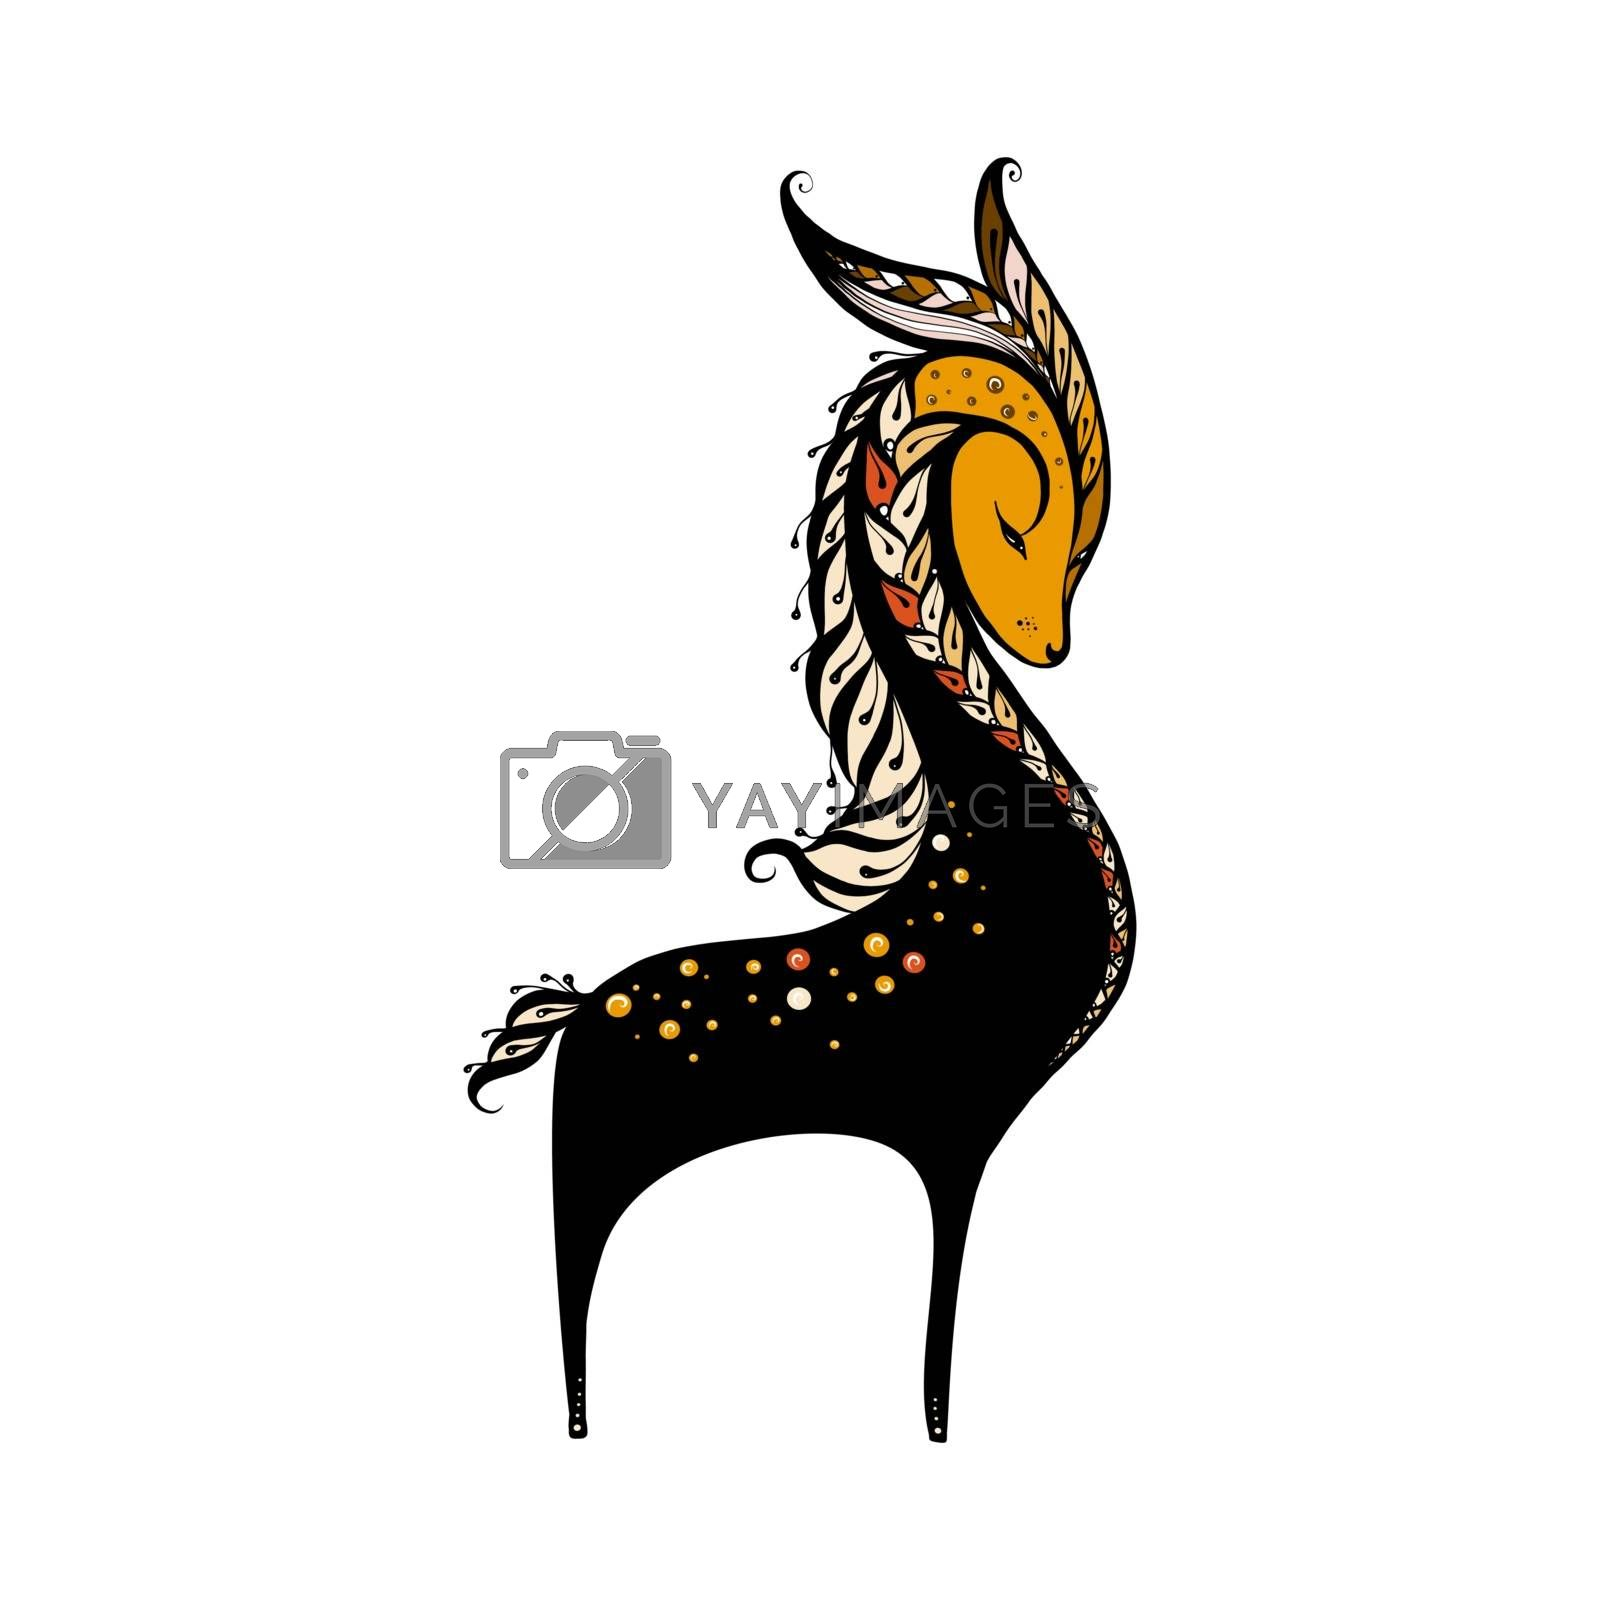 Stylized Illustration of a Deer on White Background